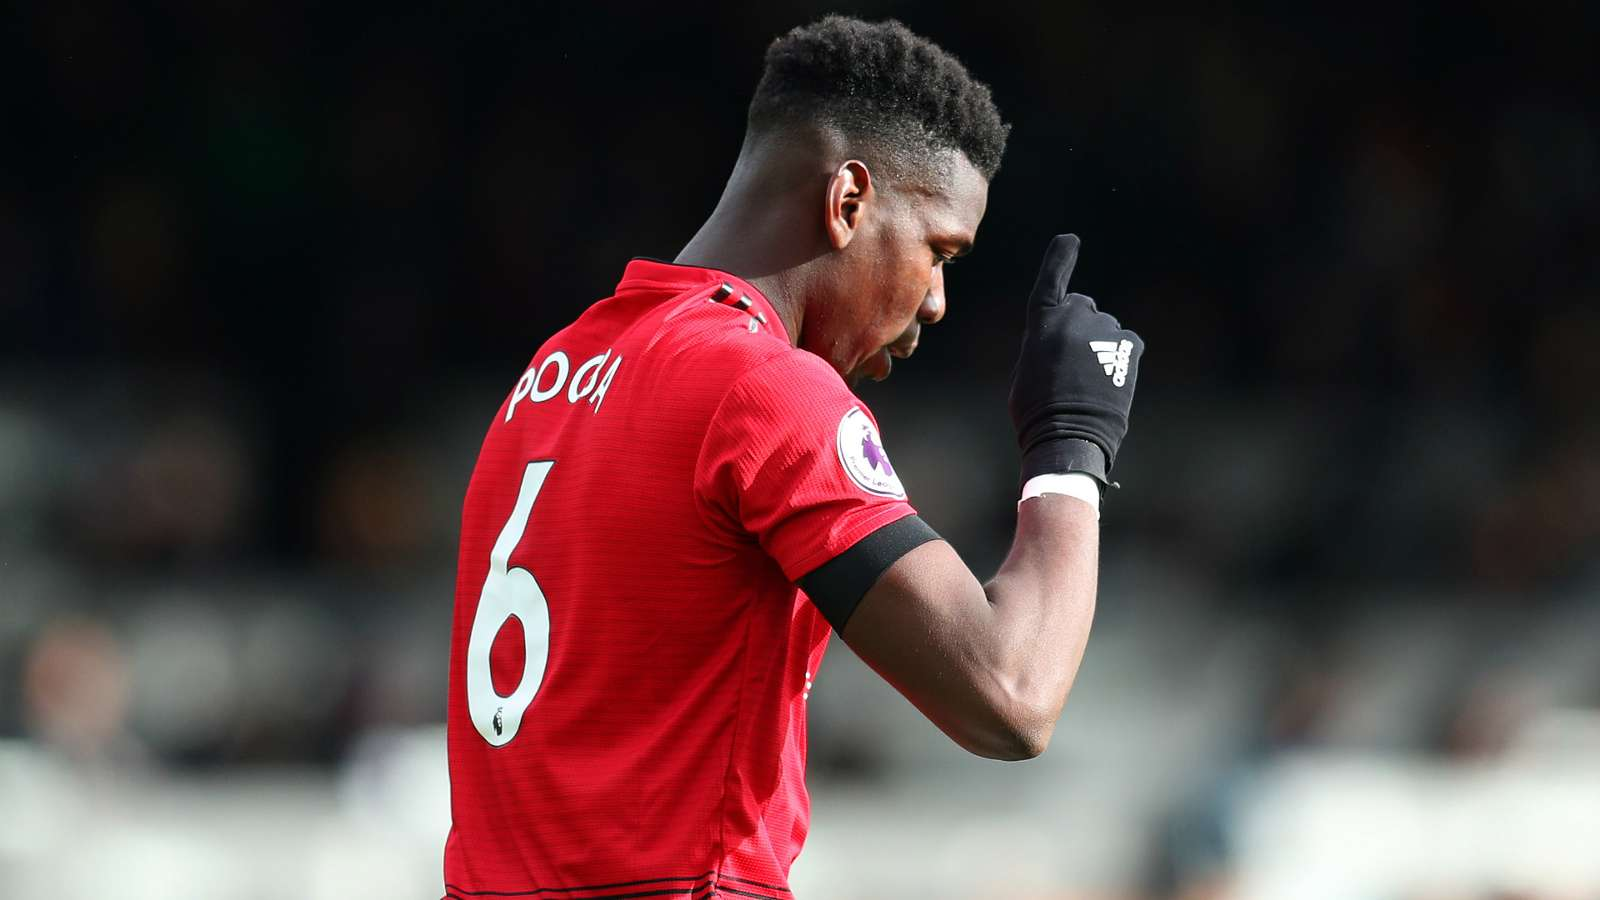 paul pogba Okay ng - Fulham vs Manchester United 0-3: Premier League Match Report & Highlights